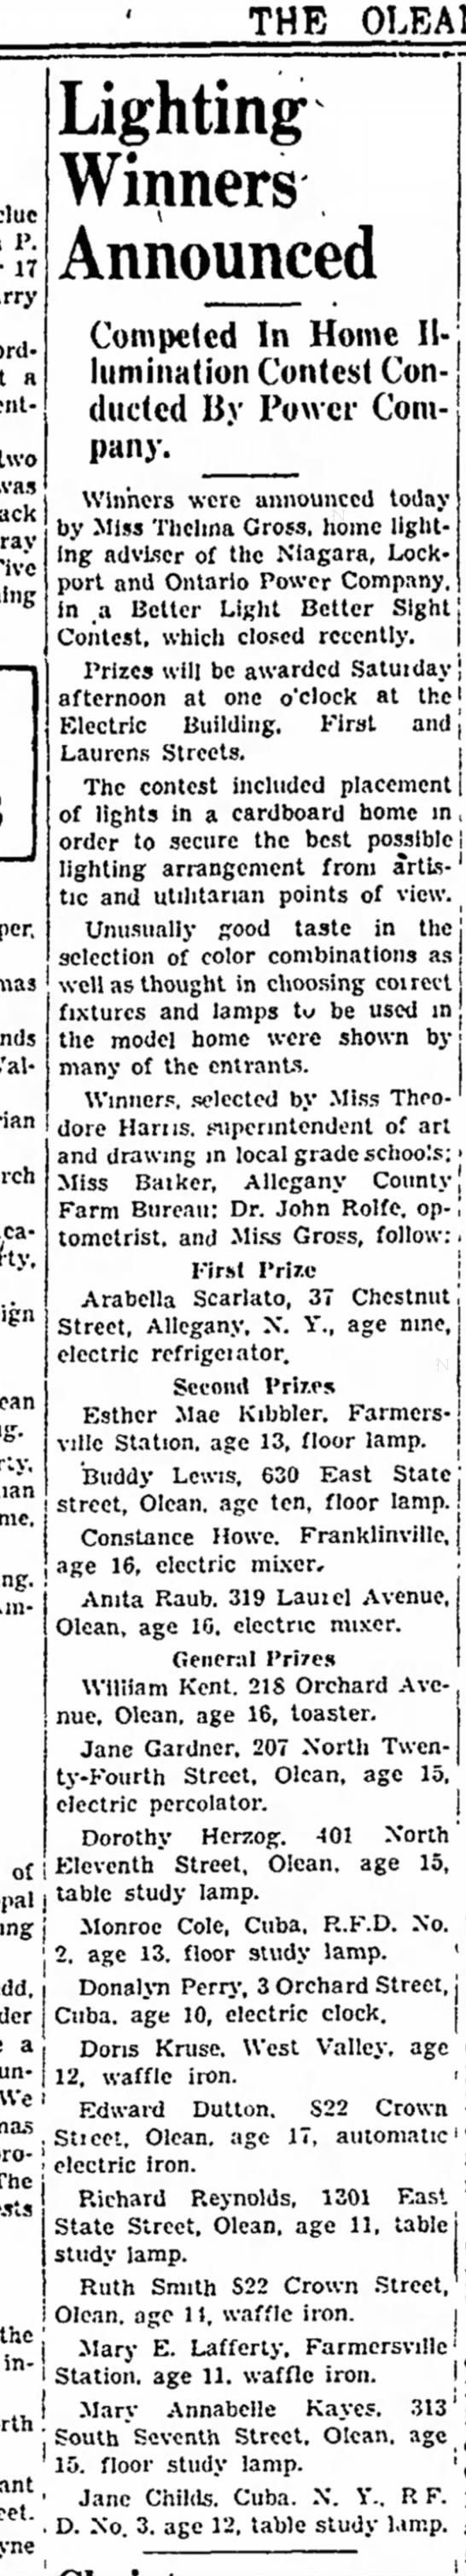 Mom's #1 Science 19 Dec 1935 - OLEAN TIMES-HERALD. as P. Hayes, froin ,lng J...